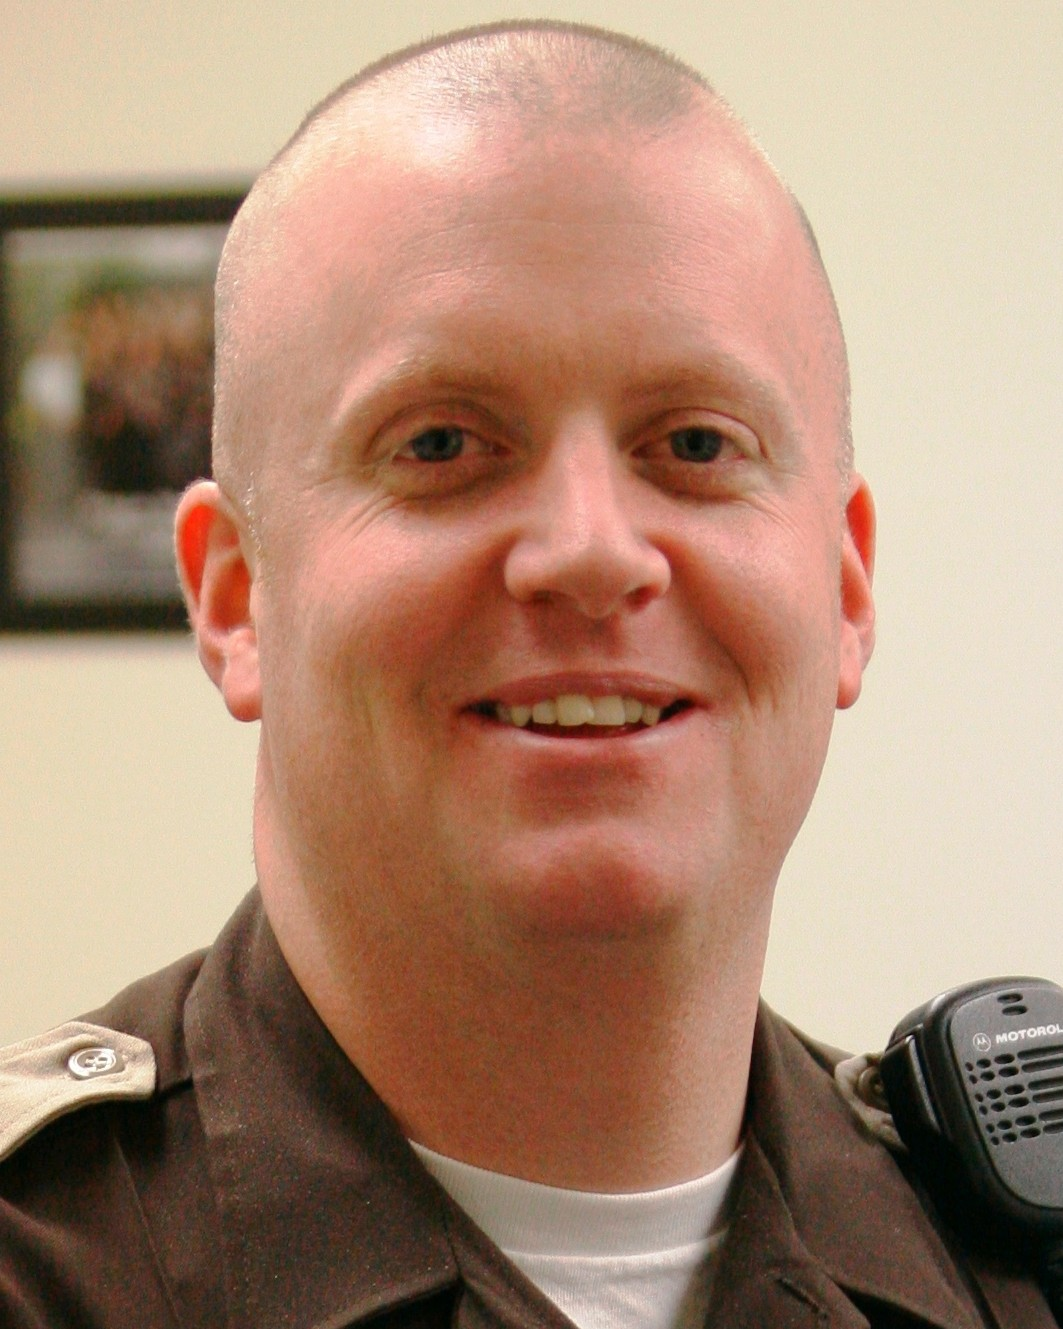 Deputy Kelly James Fredinburg, Marion County Sheriff's Office, Oregon